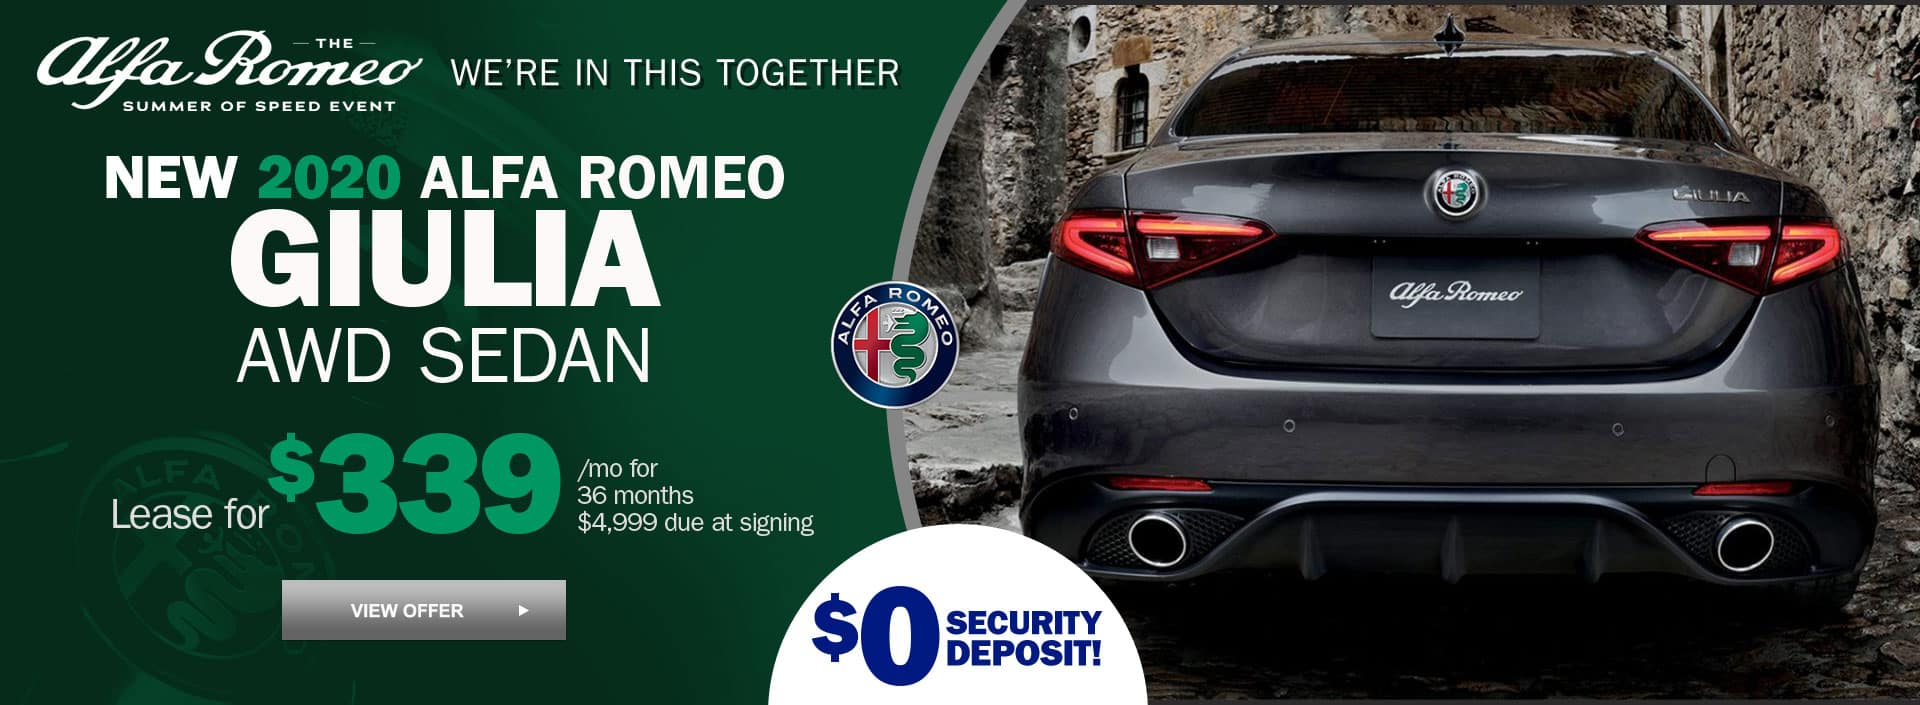 New 2020 alfa Romeo Giulia AWD Sedan for $339 per month for 36 months